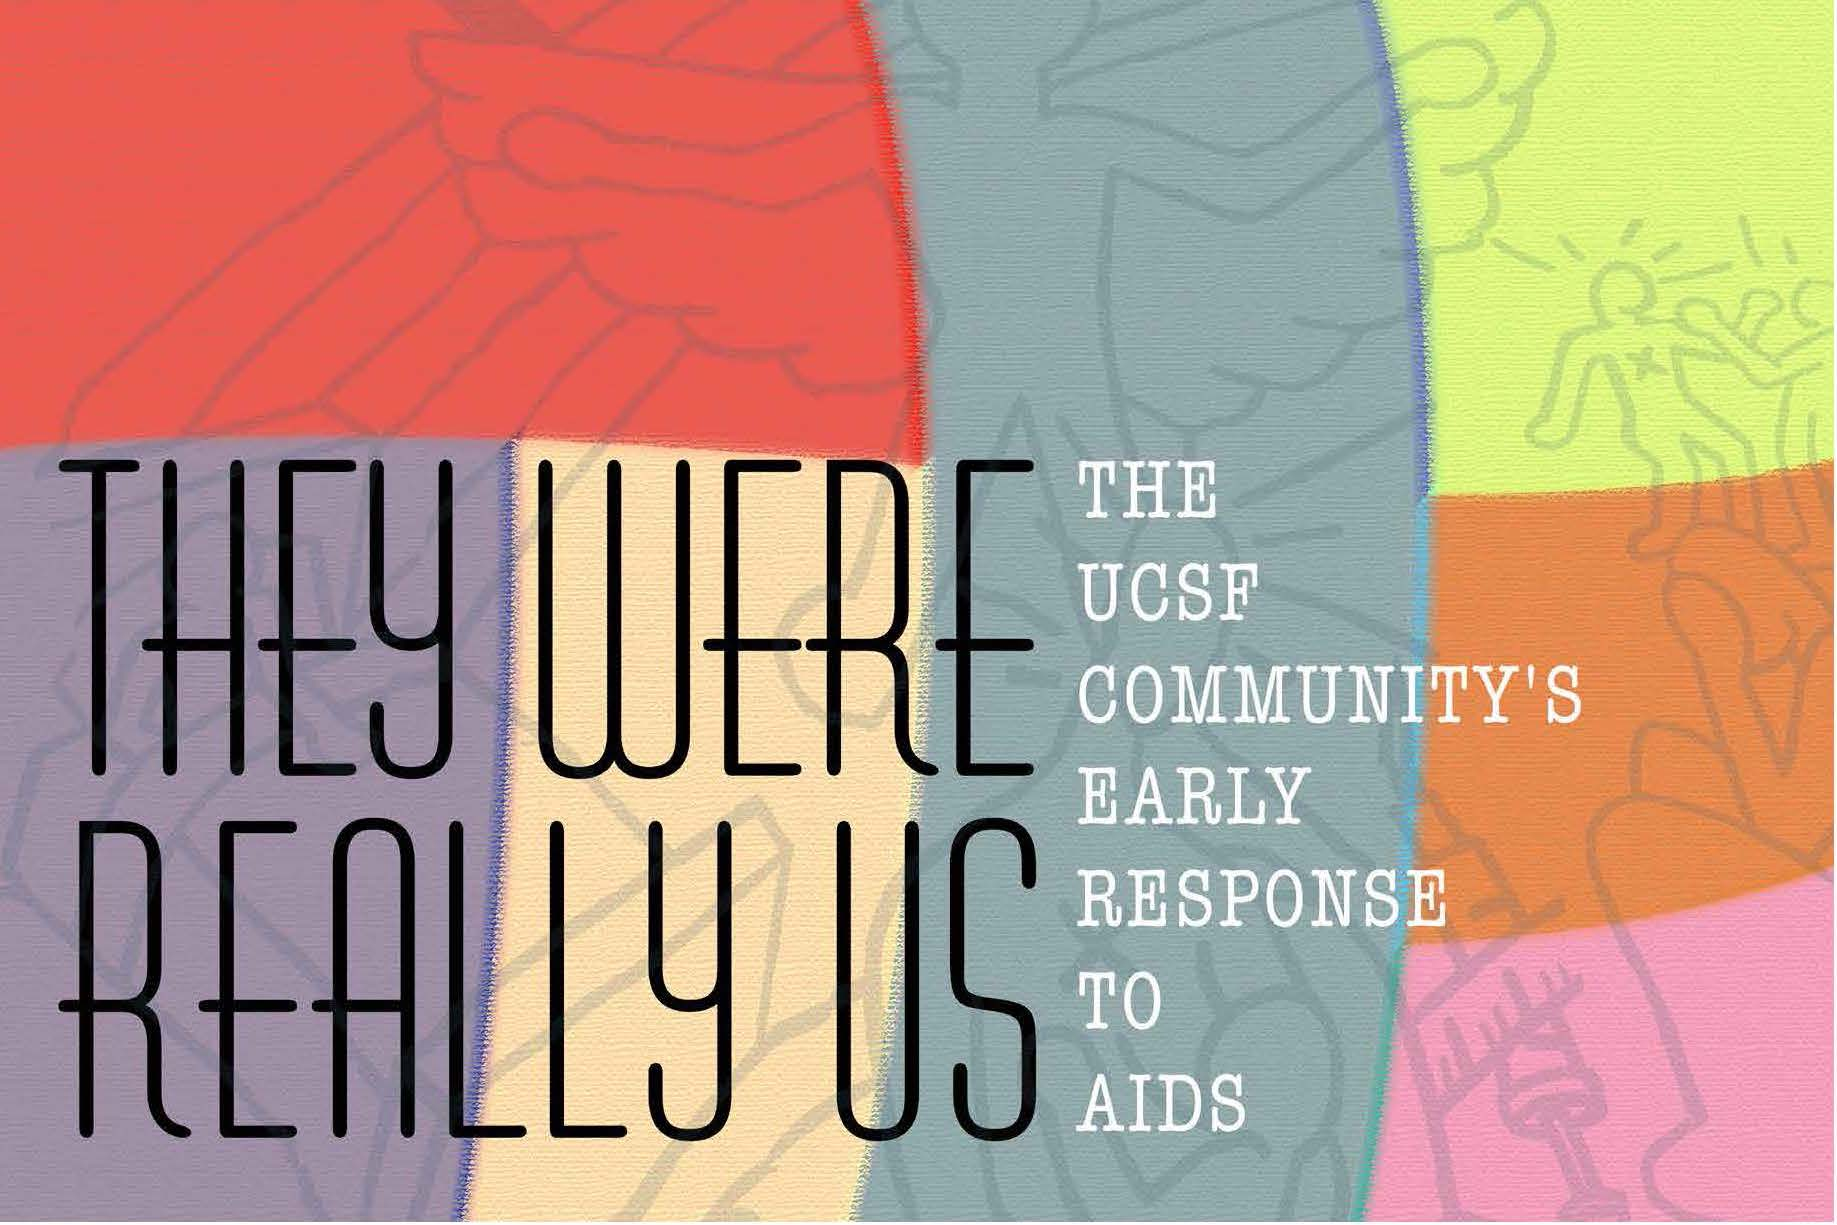 They were really us. The UCSF community's early response to aids.